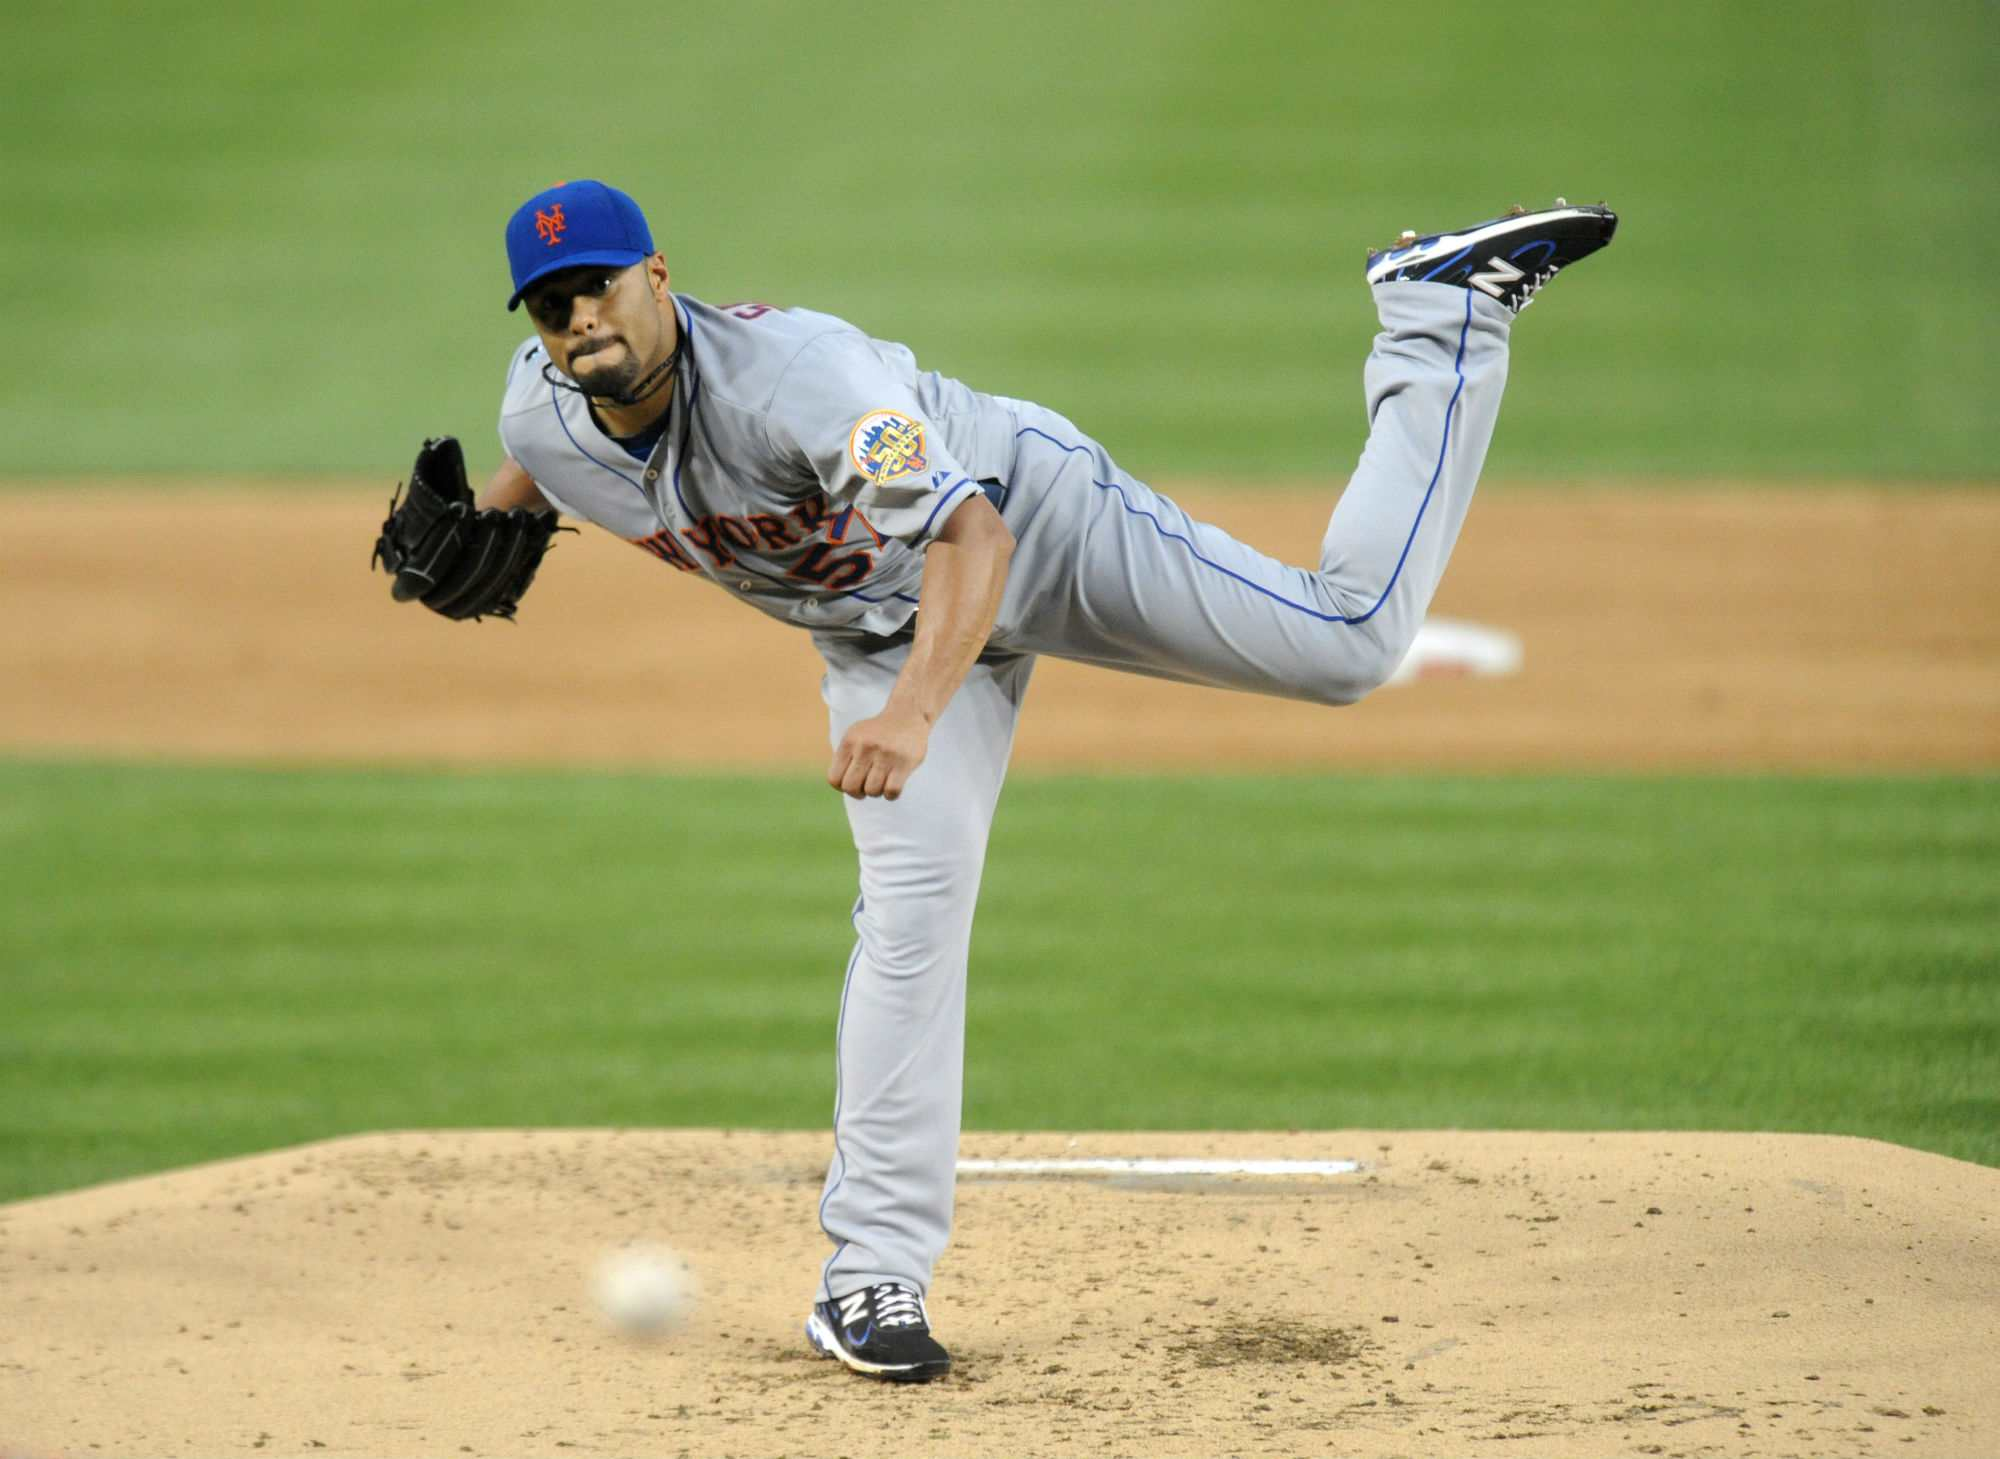 the best mlb pitchers of the 2000s